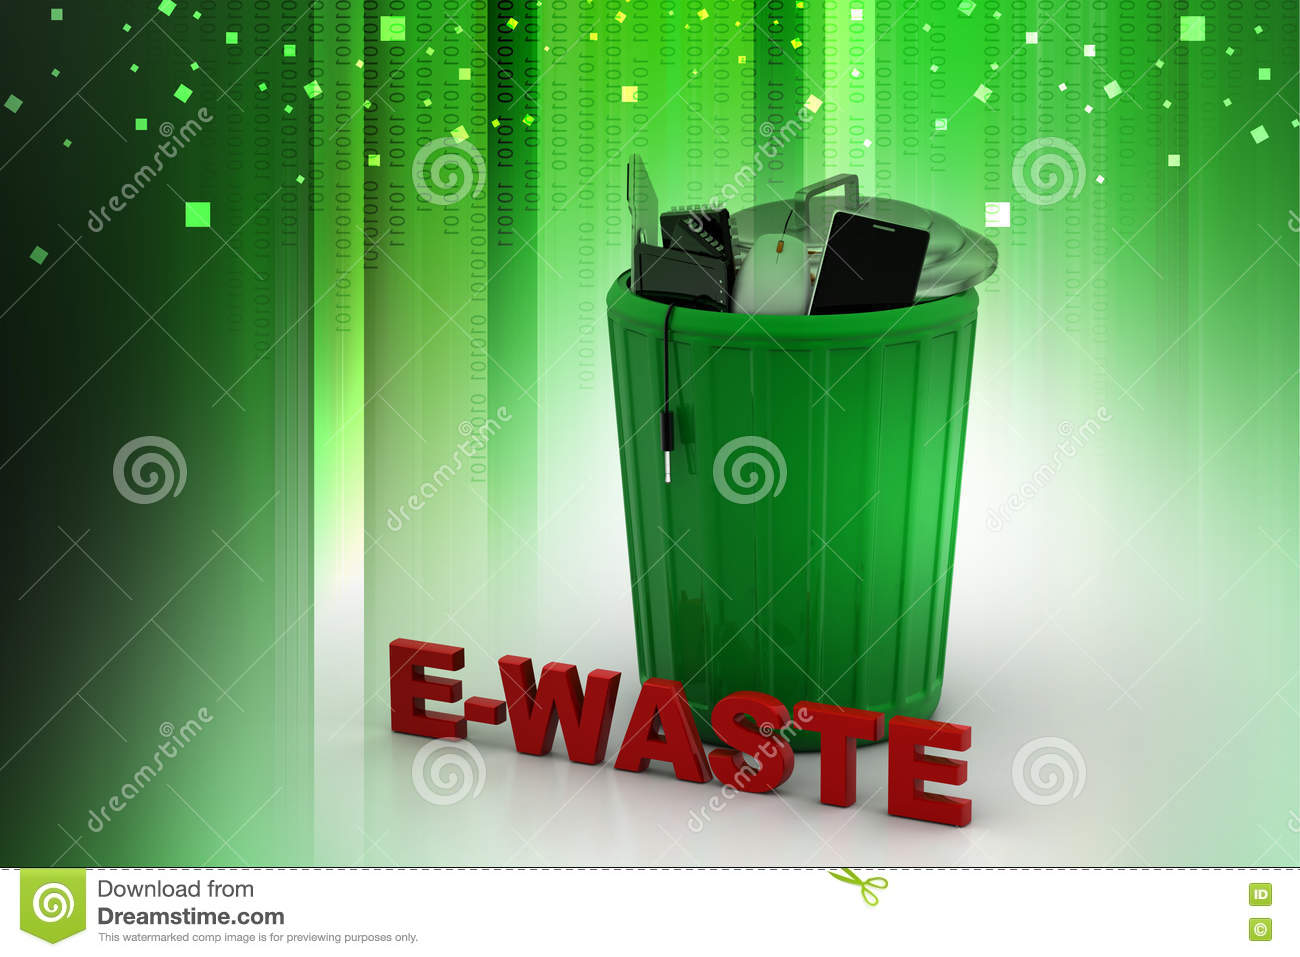 E waste background images - Electronic Waste In Green Trash Can Stock Illustration